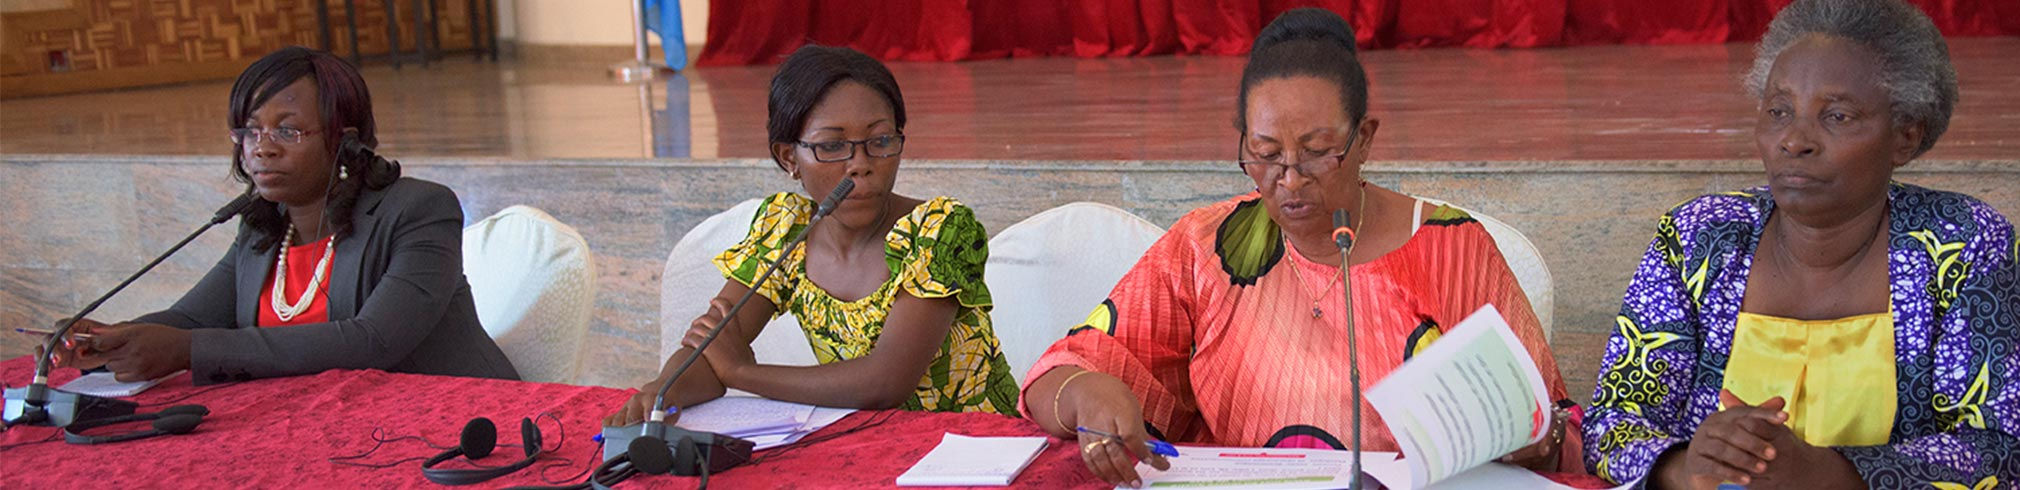 Panel discussion with (L-R) Elizabeth Ampairwe- project coordinator with EASSI in Uganda, Marie-Grace Safiamina of SOFAD RDC, Suzanne Ruboneka of Rwanda Women's Network in Rwanda, Nizigiyimana of Burundi. Panel discussing the role of rural women in security and peace.